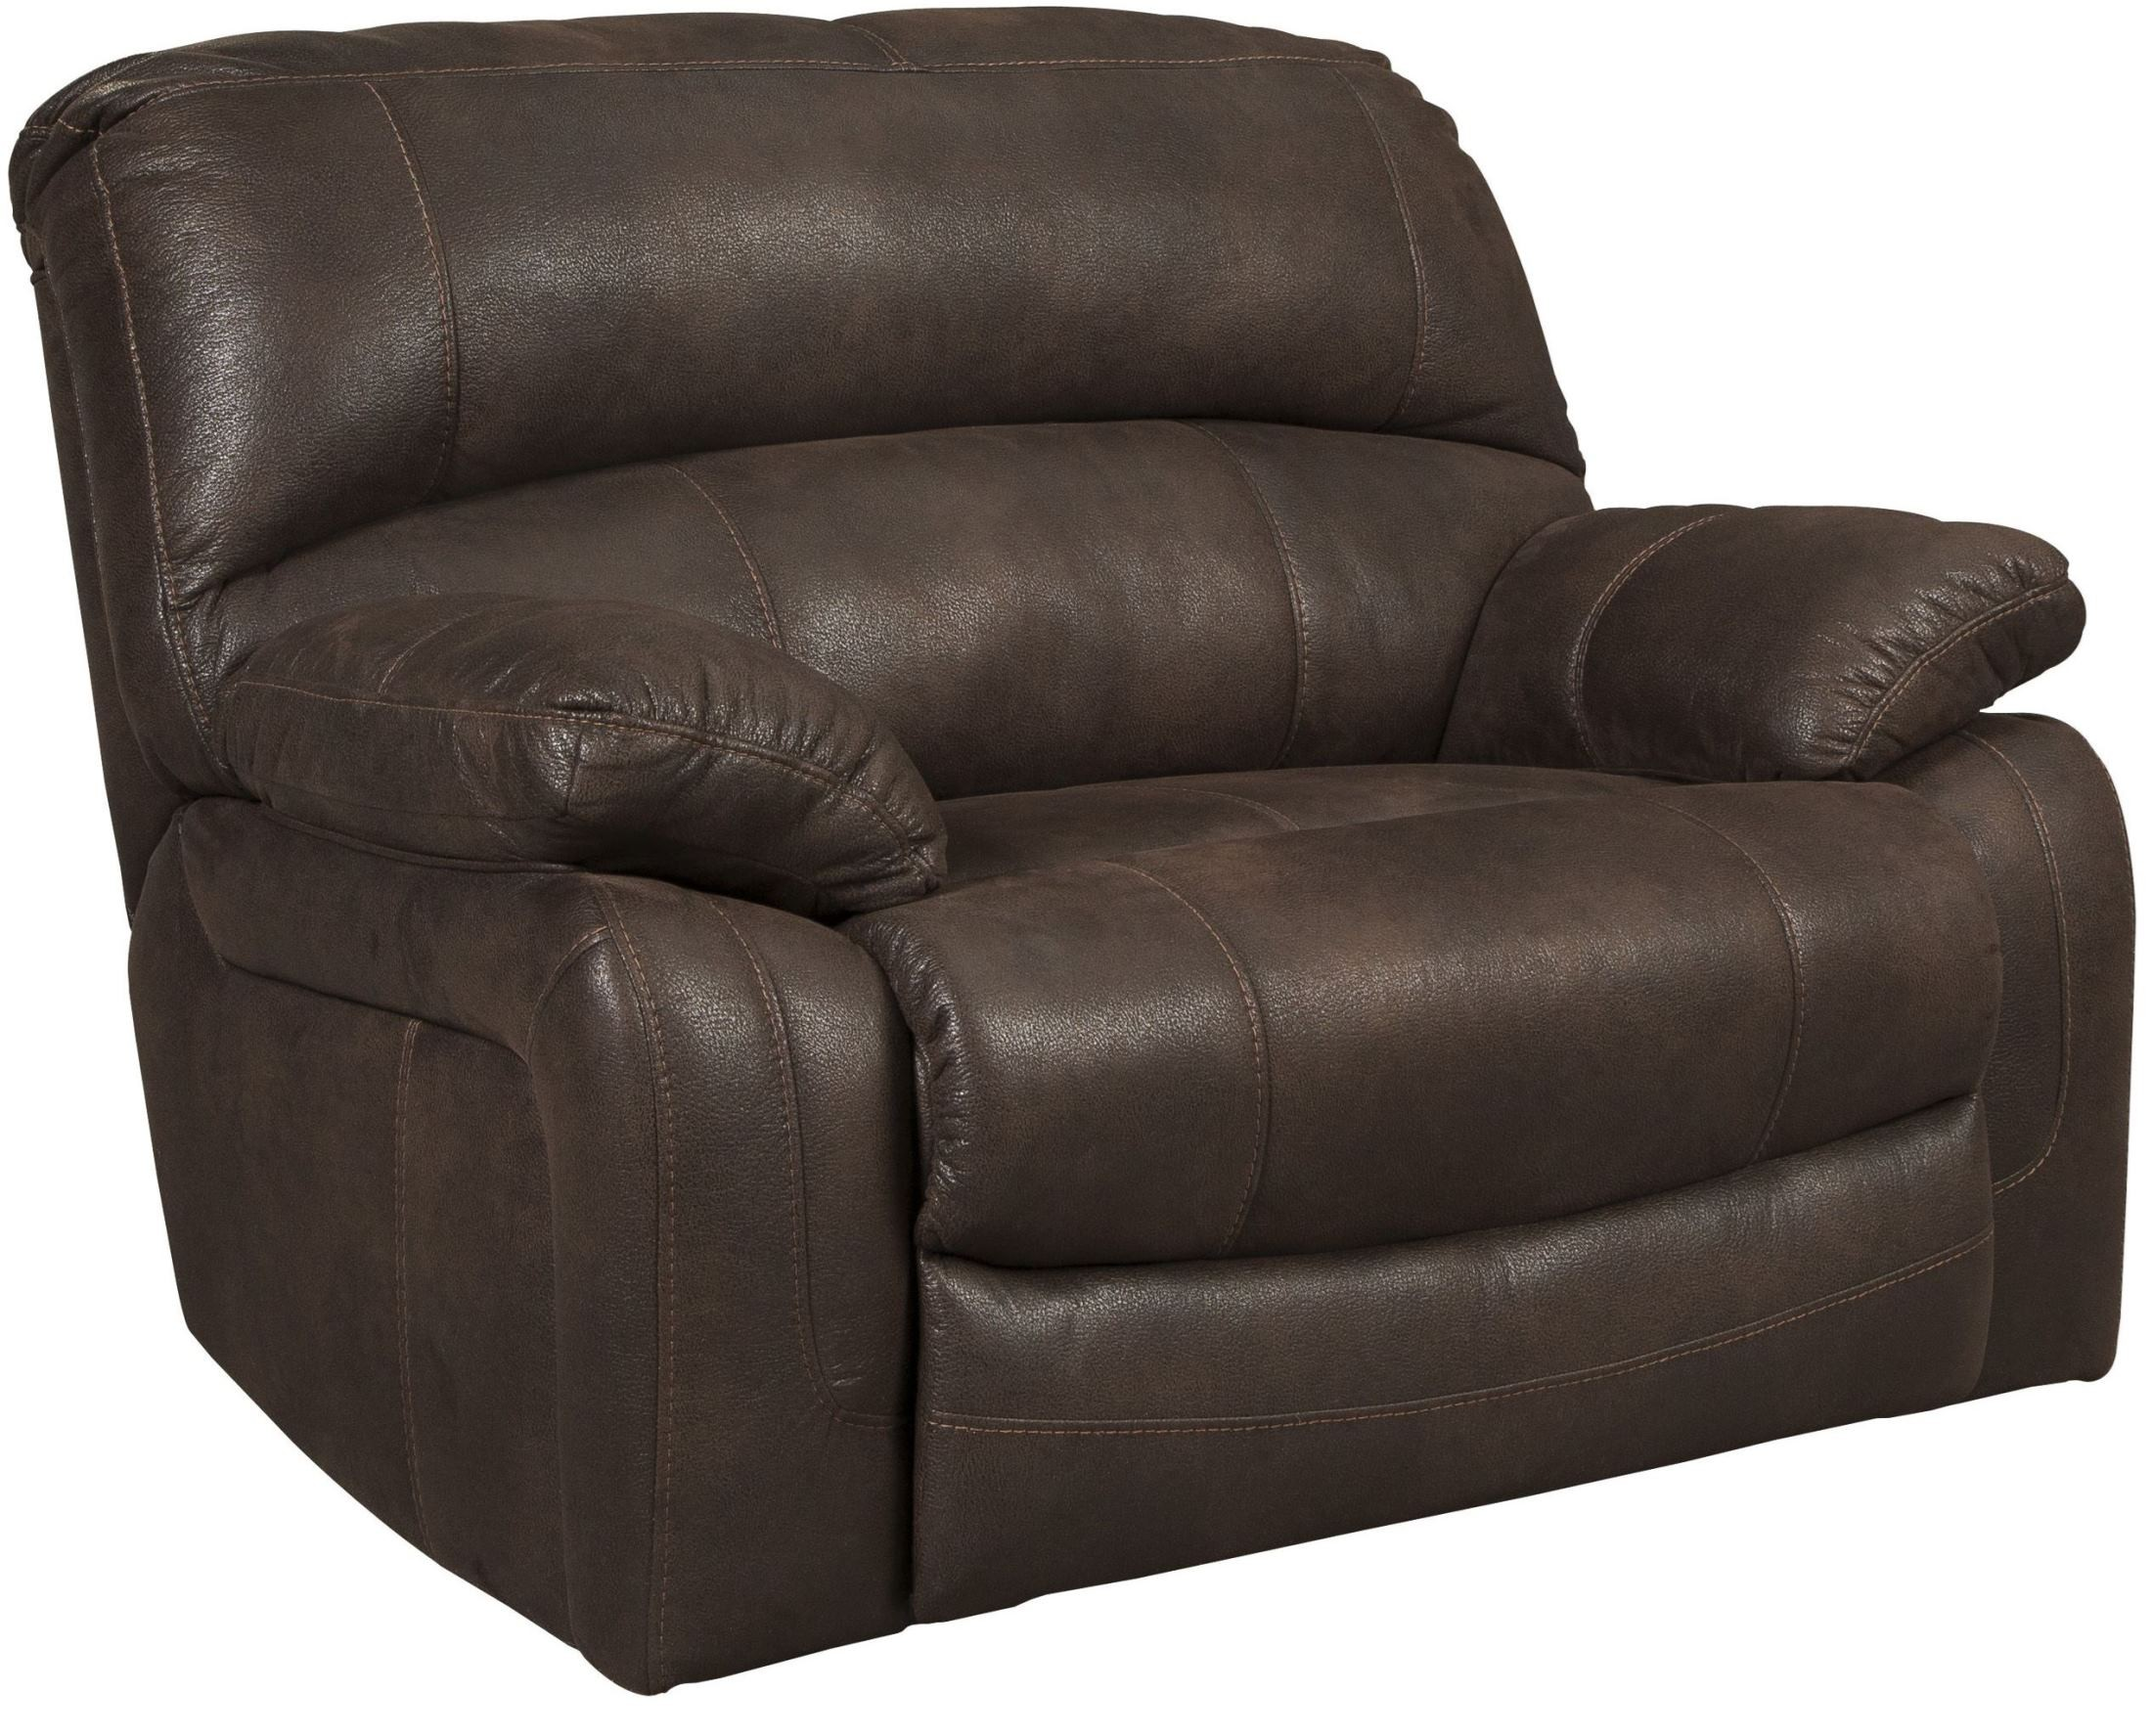 large seat depth sofas sabrina corner sofa zavier truffle wide power recliner from ashley